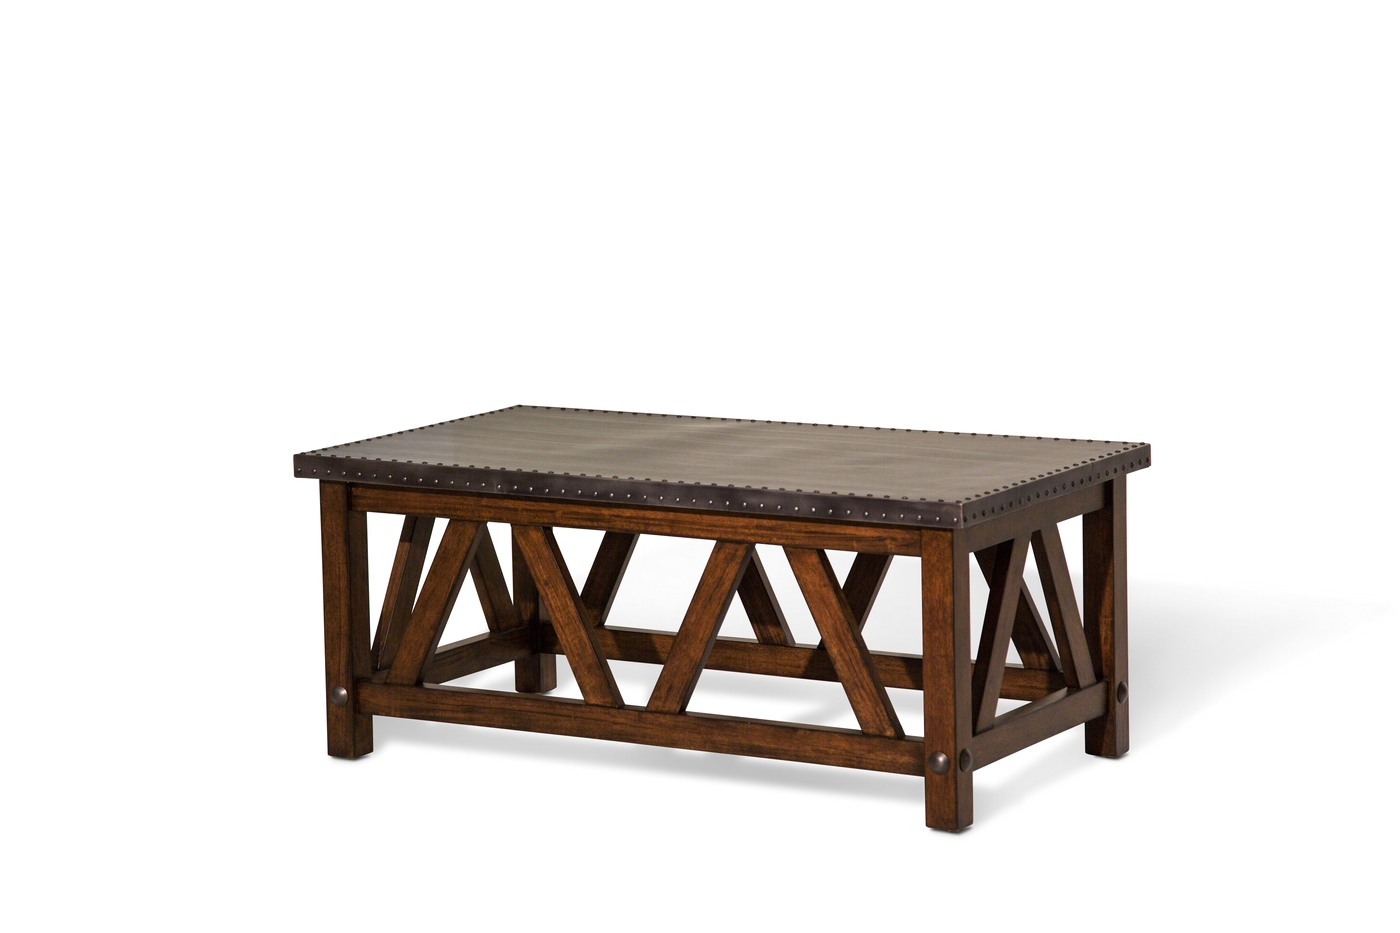 Brighton Rustic Rectangular Coffee Table With Metal Top Cappuccino Finish